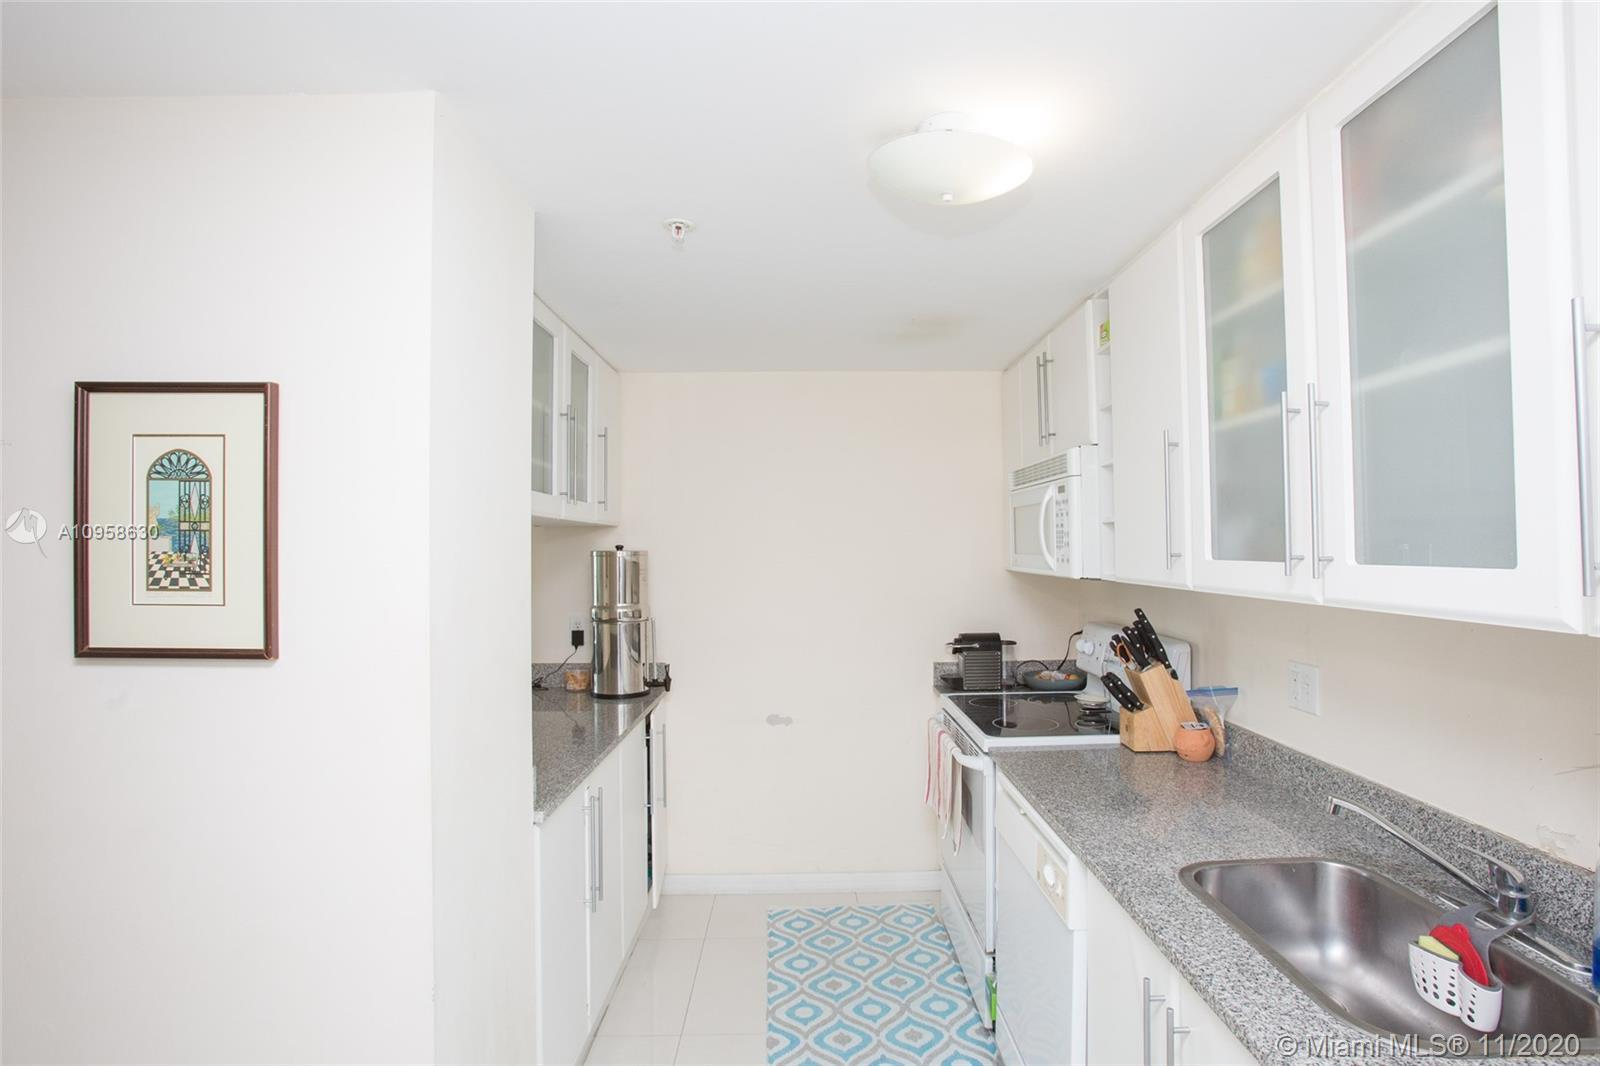 Great location between Midtown and Downtown  ,  close Distance  to Art Center , Miami American Airli